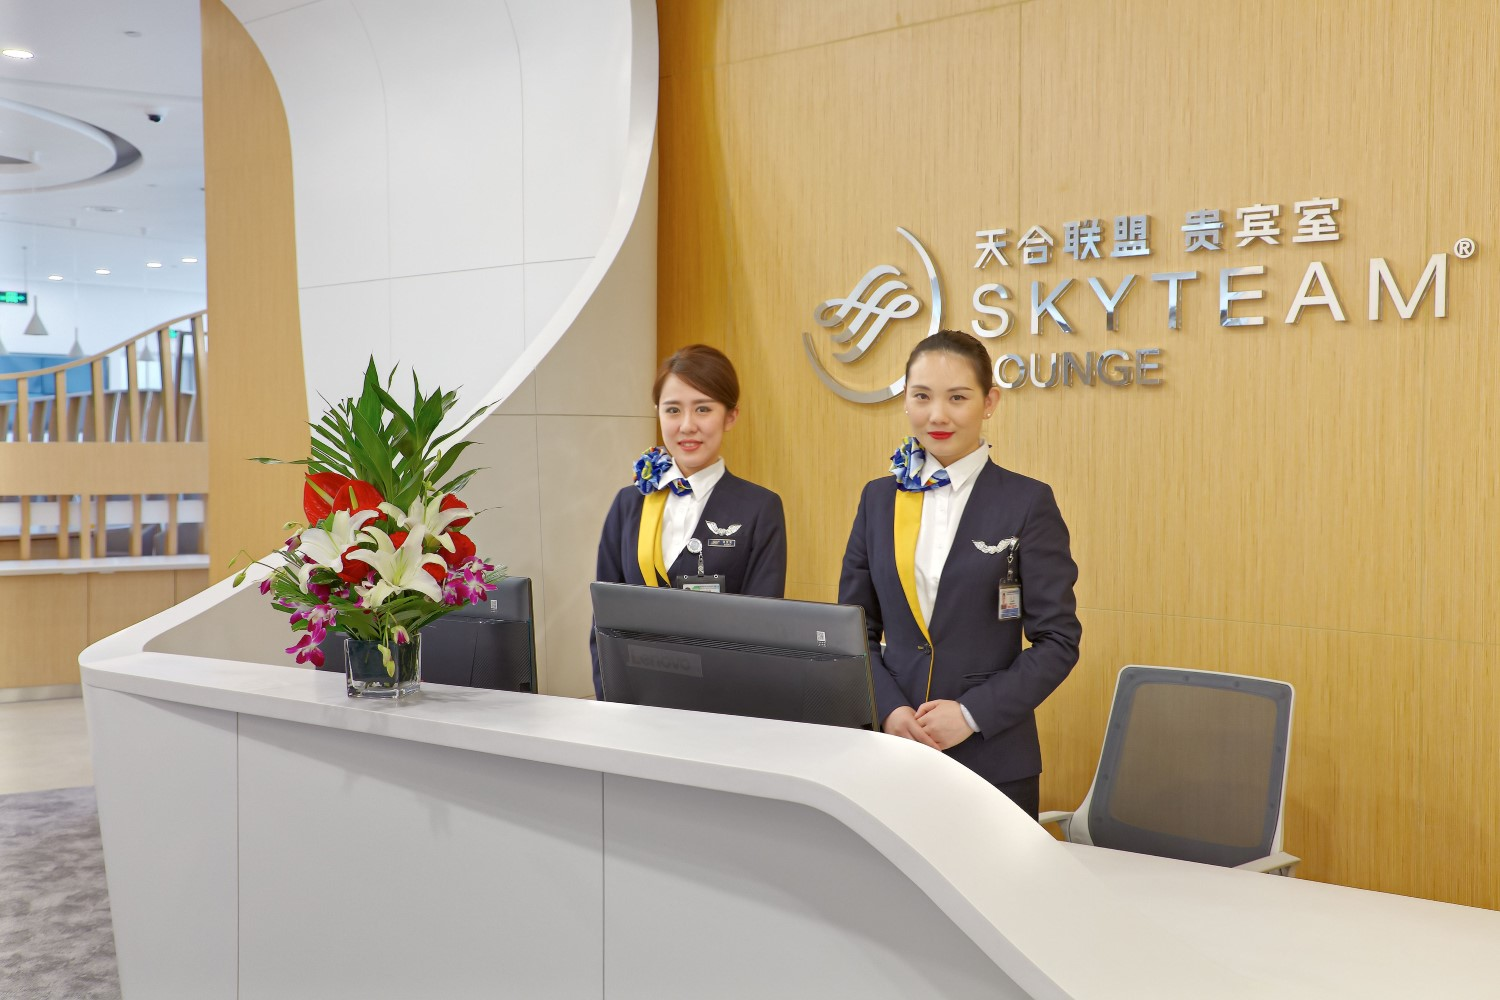 it-seems-a-little-odd-not-to-at-least-have-skyteam-uniforms-for-the-lounge-image-skyteam-custom